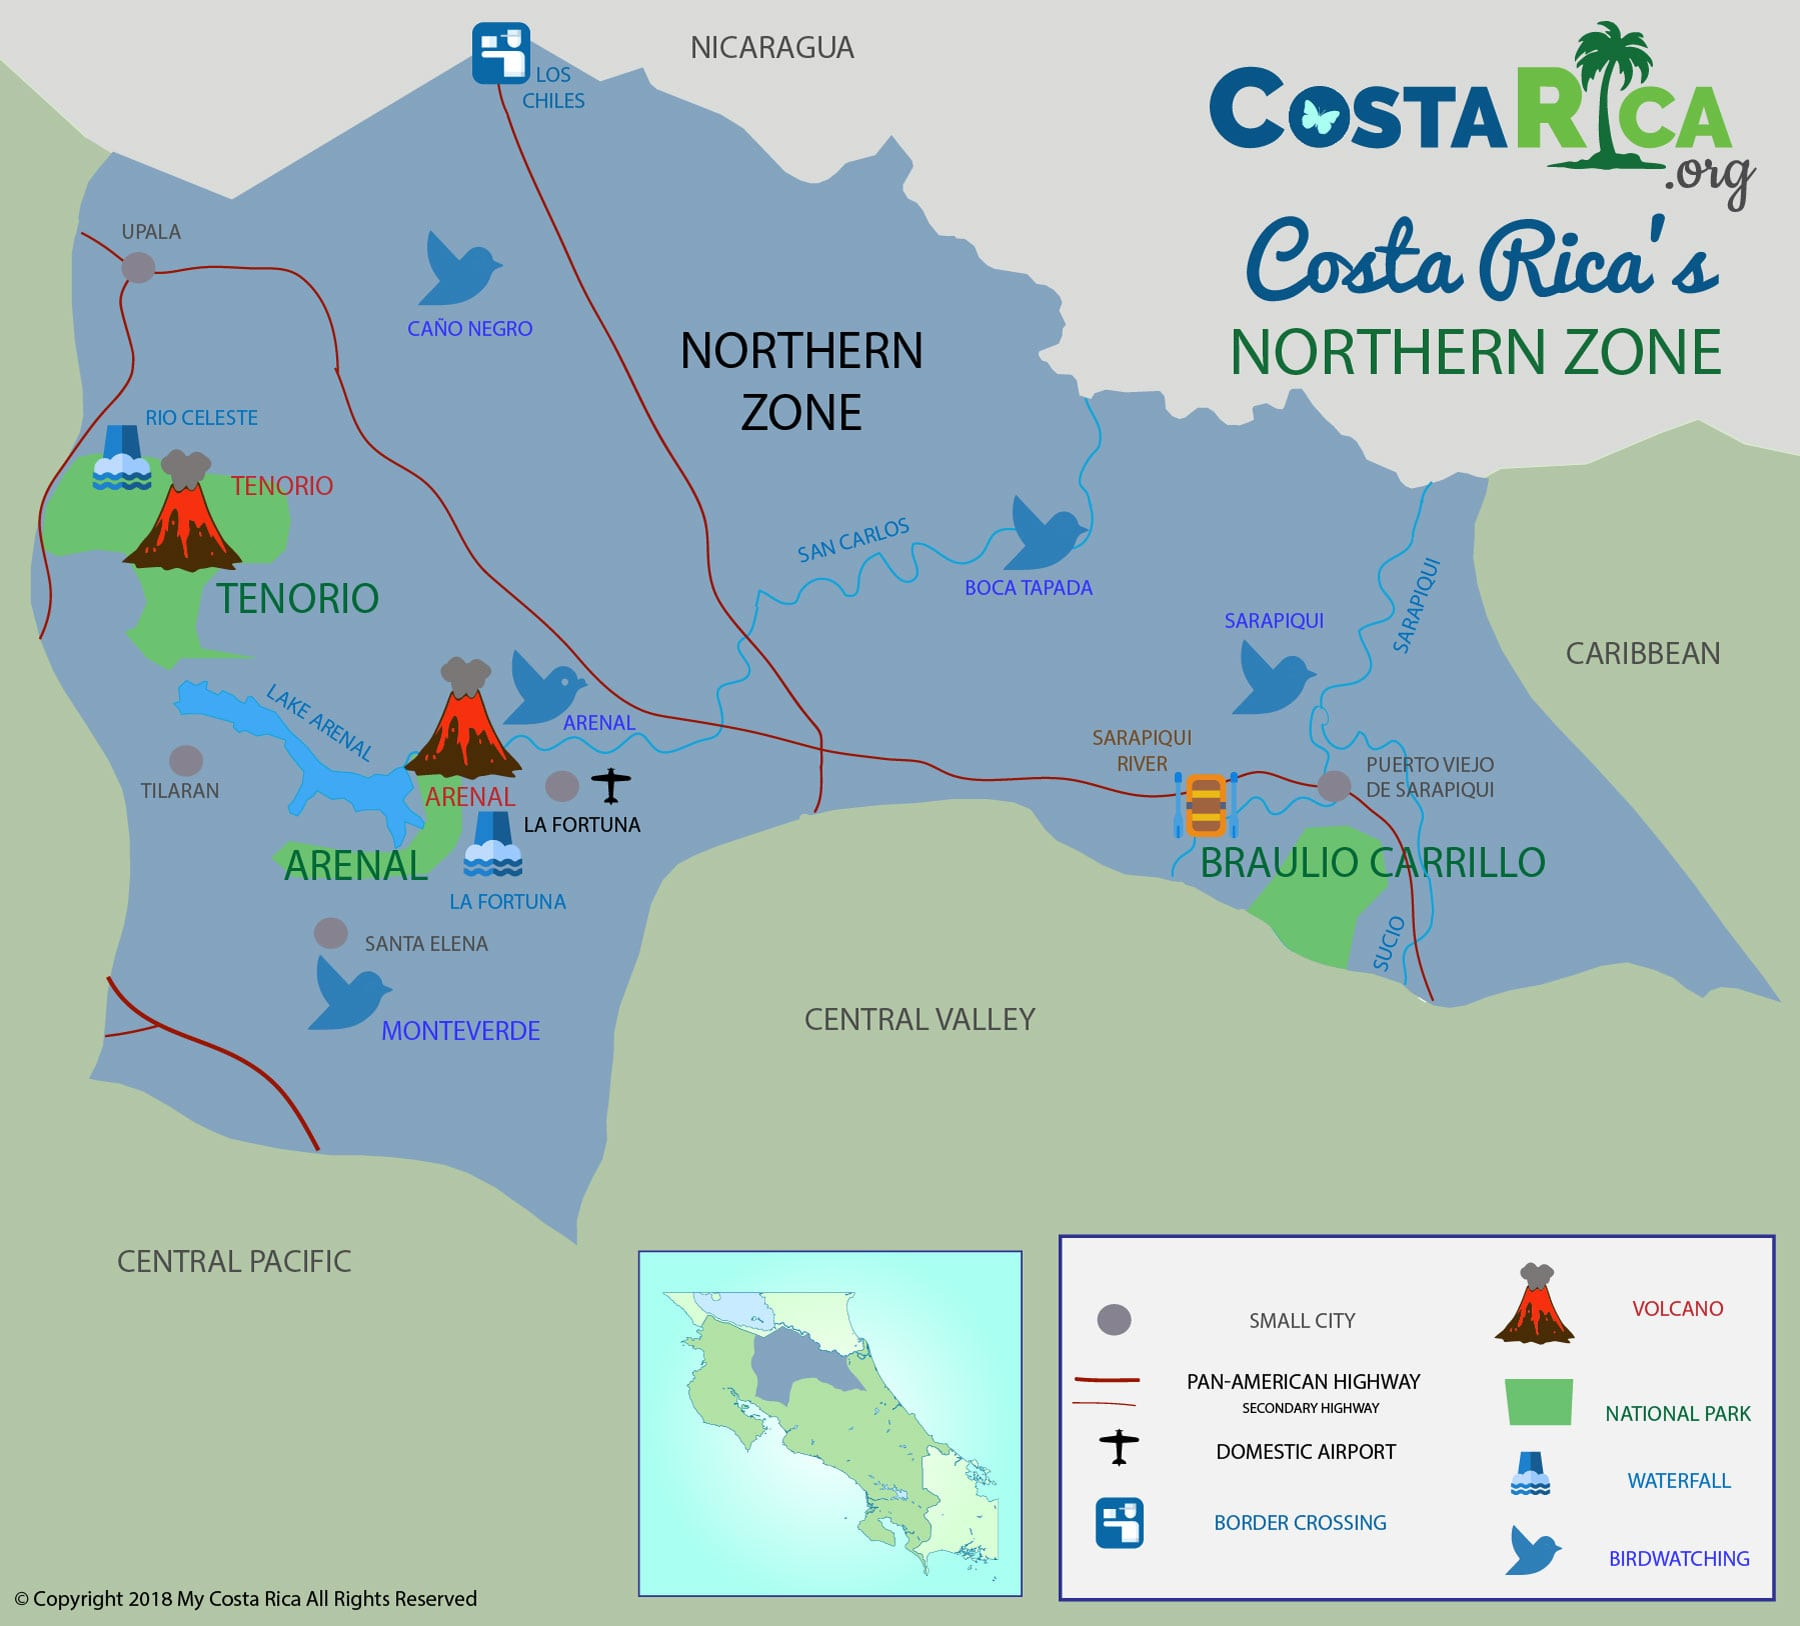 Costa Rica Maps - Every Map You Need for Your Trip to Costa Rica on map of tanzania, map of alajuela, map of the carribean, map of dominican republic, map of the yucatan, map of belize, map of americas, map of united states, map of atlantic ocean, map of puerto rico, map of nicaragua, map of the virgin islands, map of guatemala, map of bahamas, map of caribbean, map of honduras, map of el salvador, map of jamaica, map of bolivia, map of ecuador,